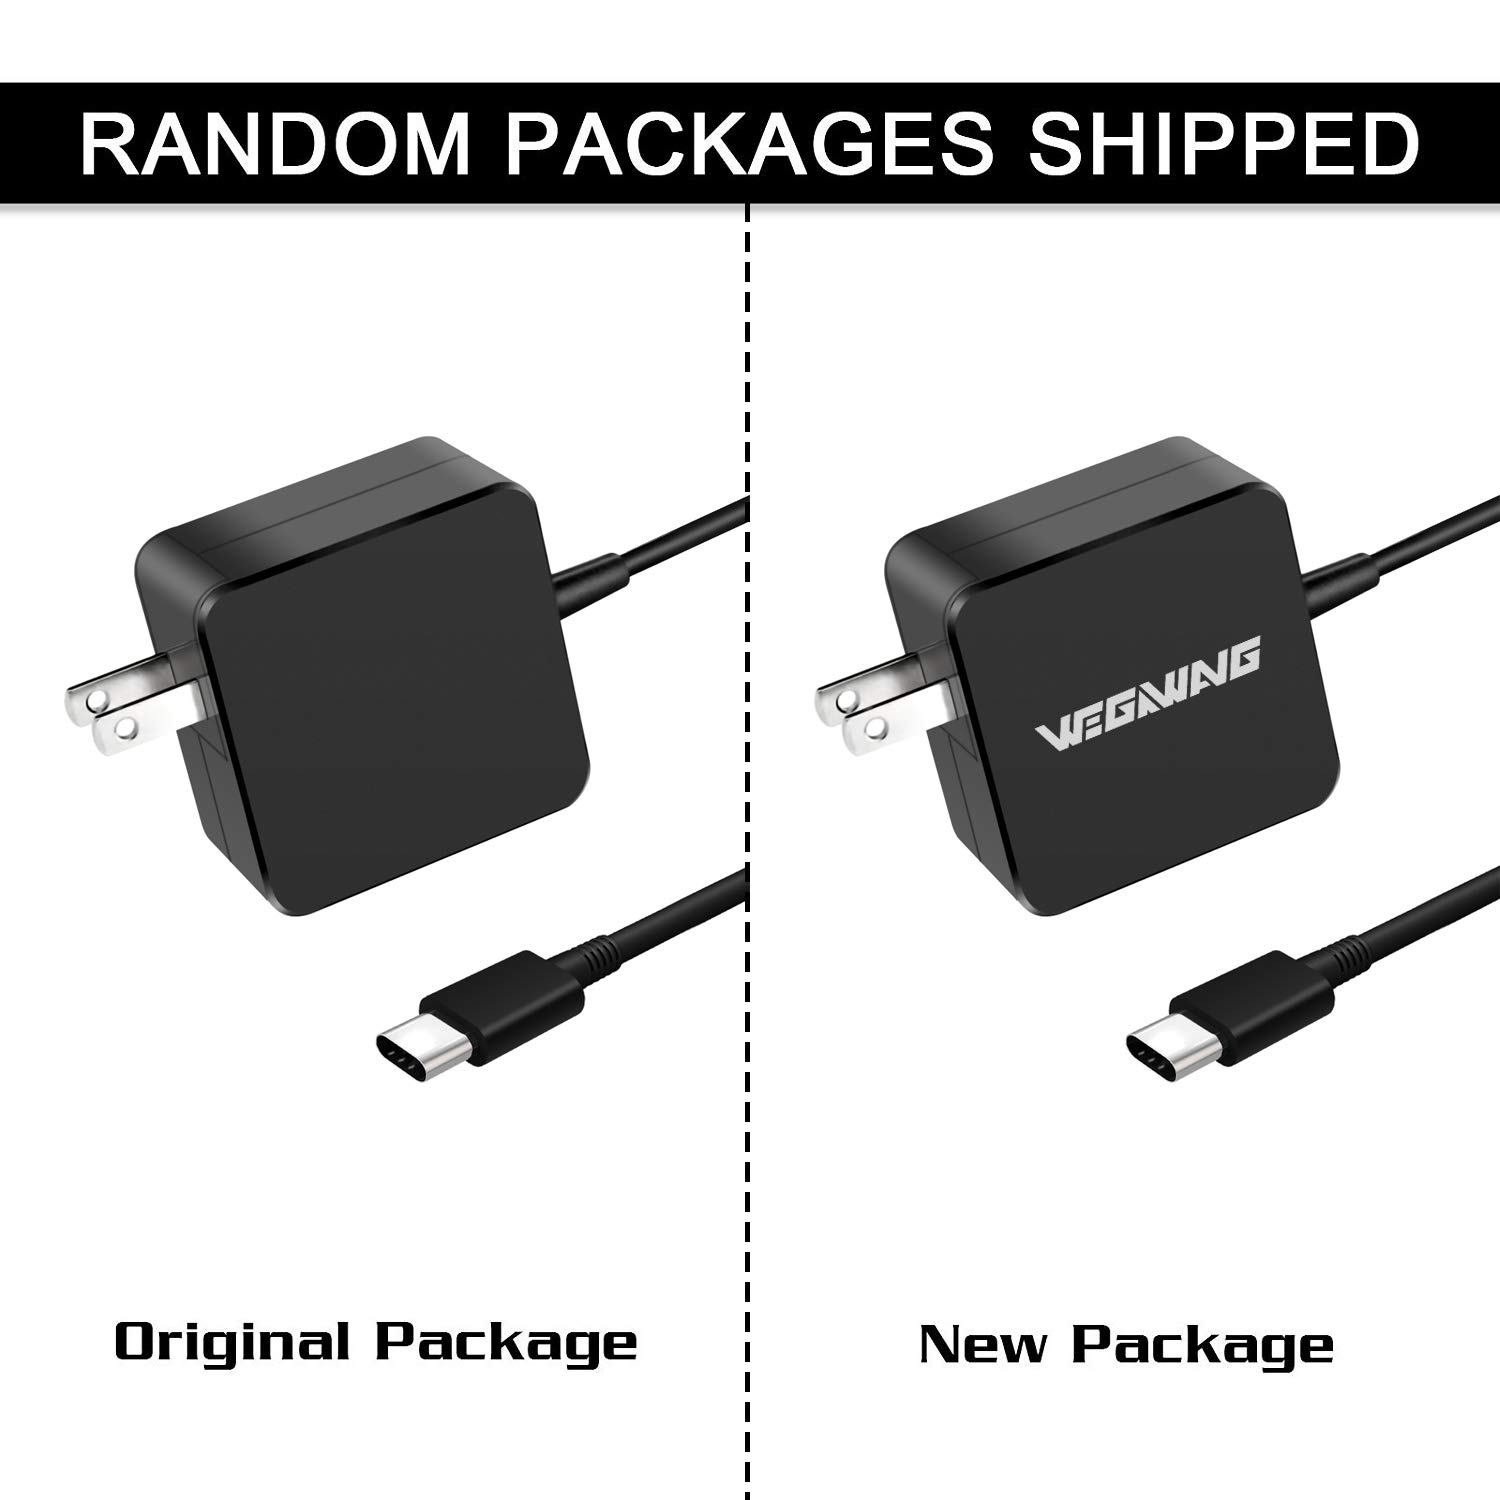 87W/90W USB-C Adapter Charger, WEGWANG Type C Power Adapter Charger 87W(Automatically Compatible with 61W, 45W, 30W and 12W Device) for MacBook/Pro and Any Laptops or Smart Phones with USB C by WEGWANG (Image #2)